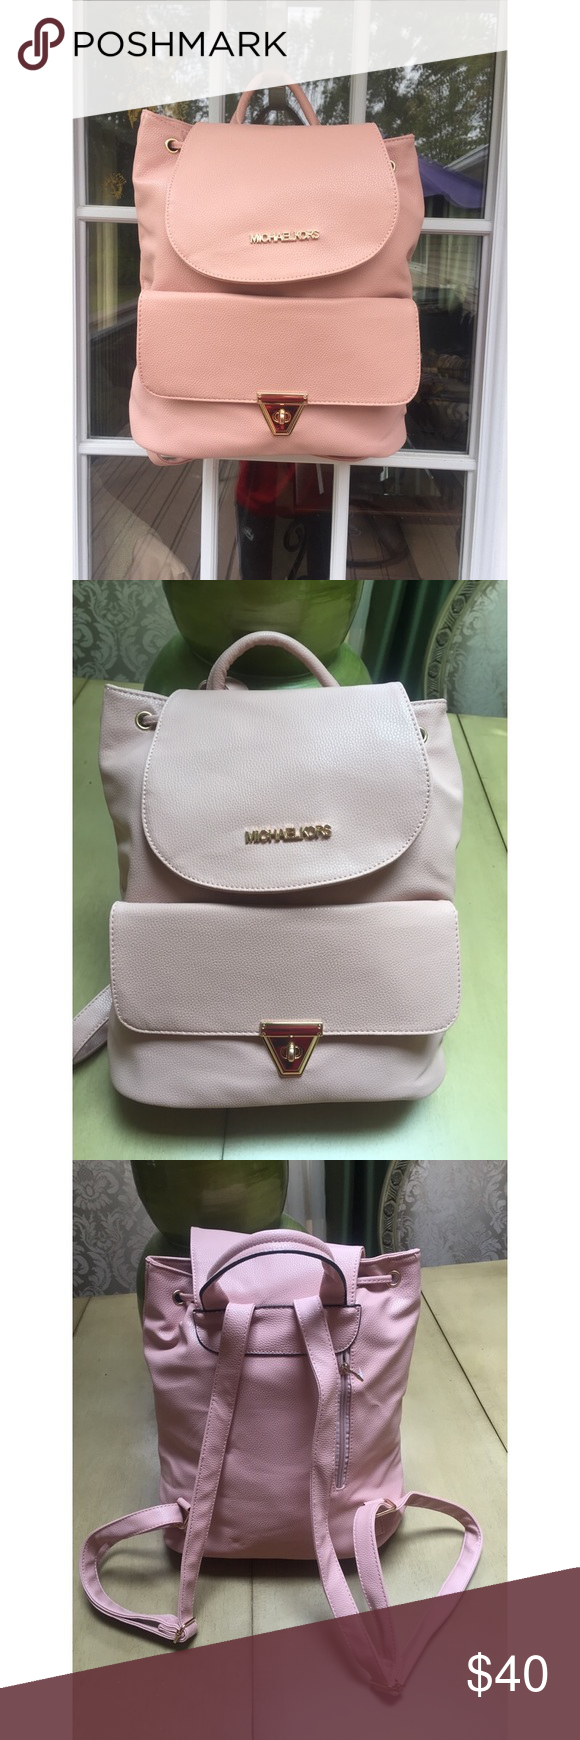 e38fa726742d72 Pink Michael Kors backpack! Cute designer inspired Michael Kors back pack.  The height is 13 1/2, the length is about 15 inches, and the width is about  4 ...